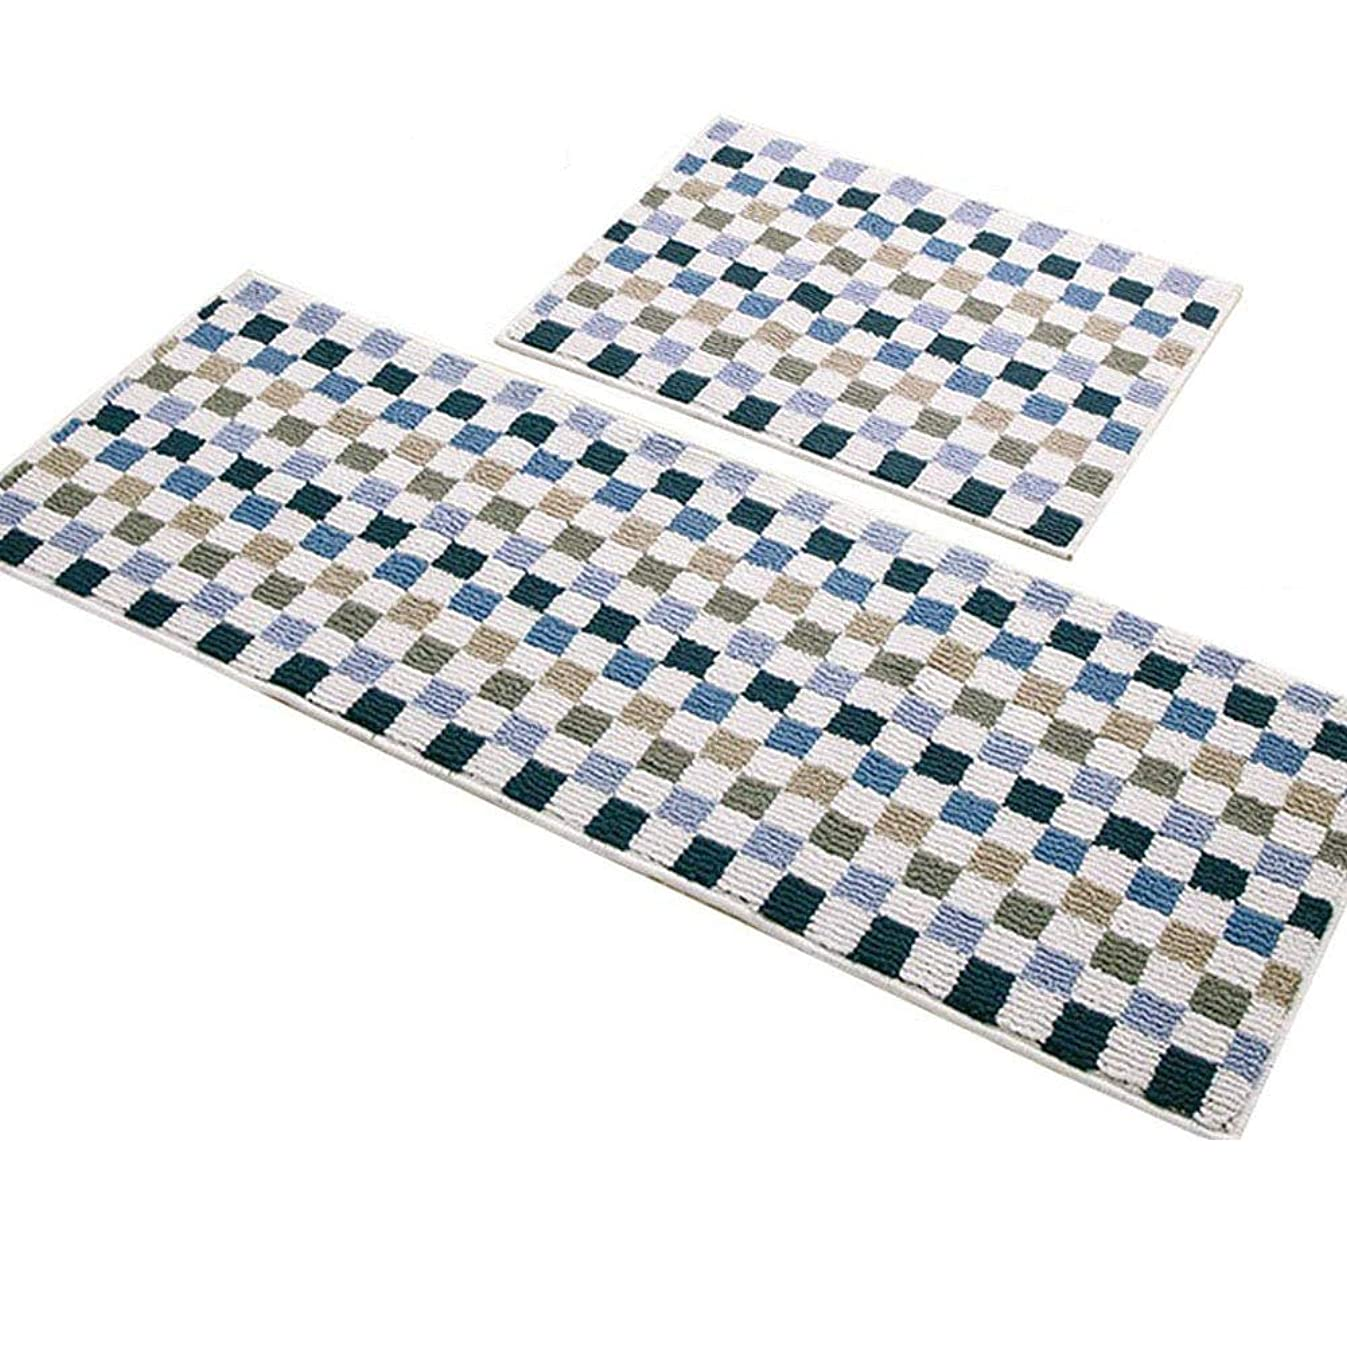 Easychan 2 Piece Carpet Rubber Backing Non-Slip Kitchen Mat Doormat Area Rugs (17